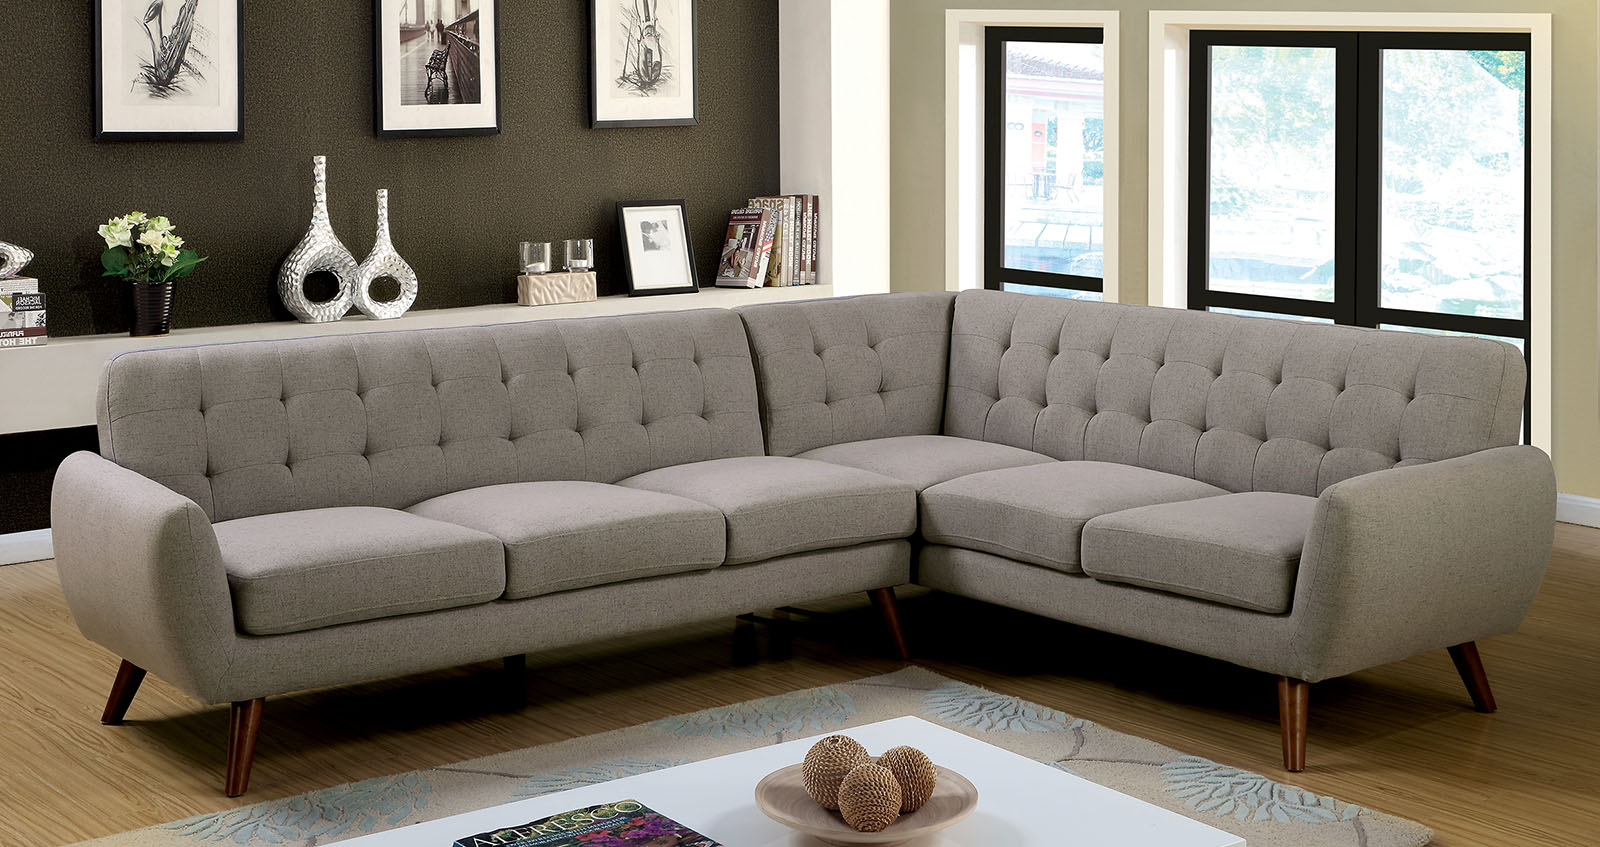 furniture of america 6144 gray mid century modern sectional sofa. Black Bedroom Furniture Sets. Home Design Ideas